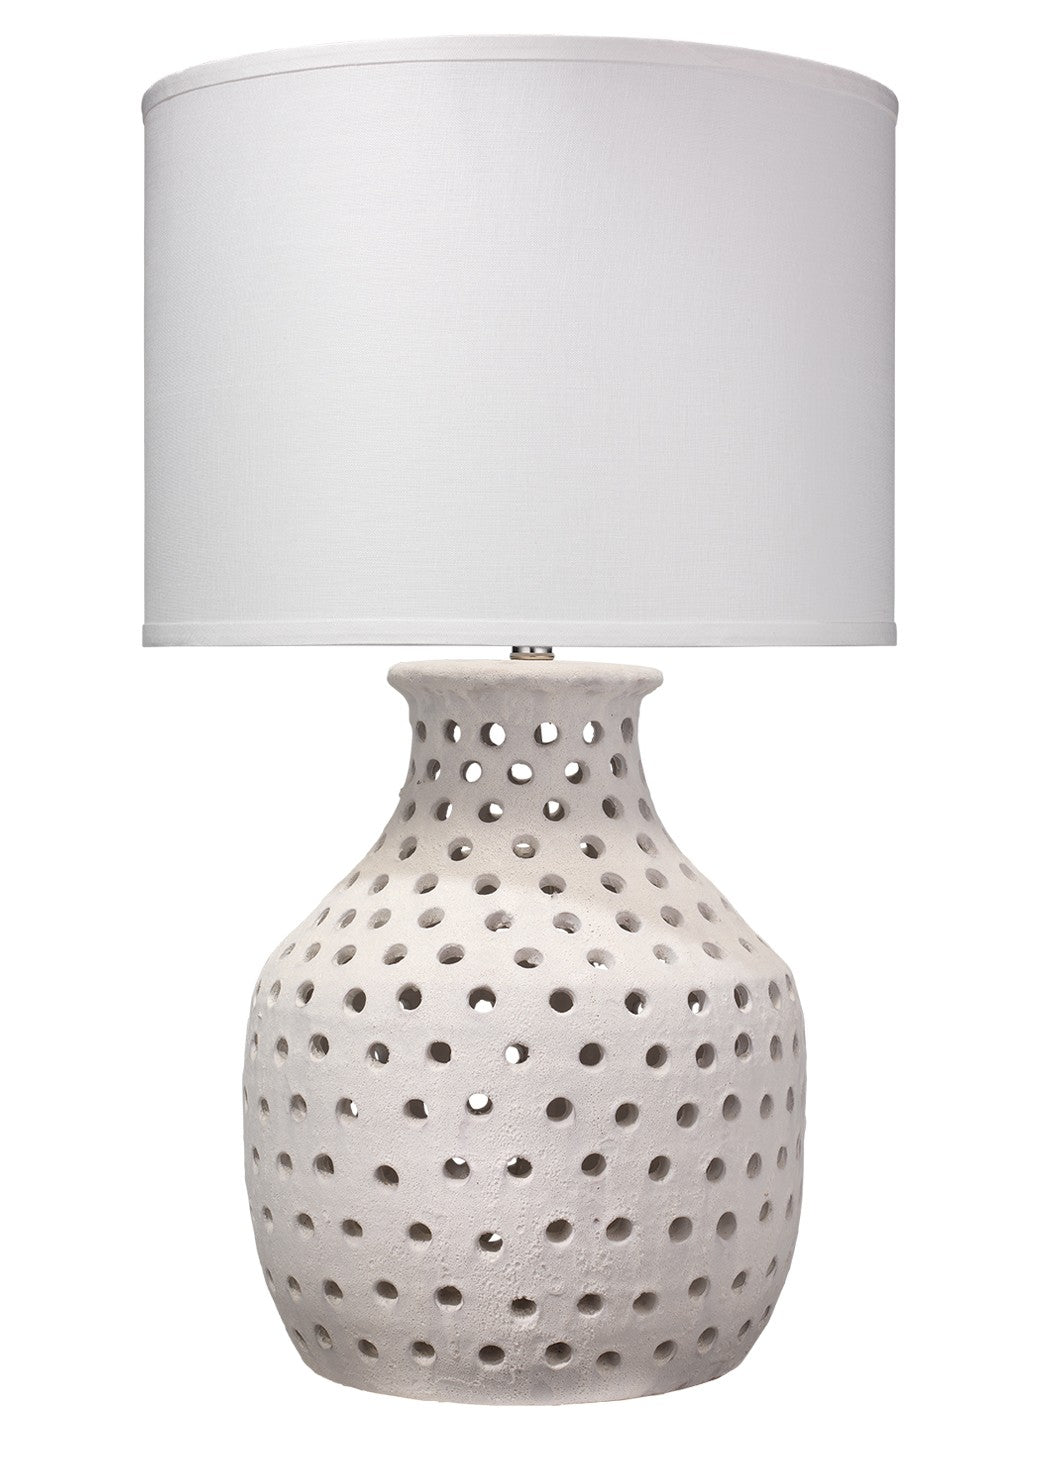 jamie young porous table lamp white base white shade